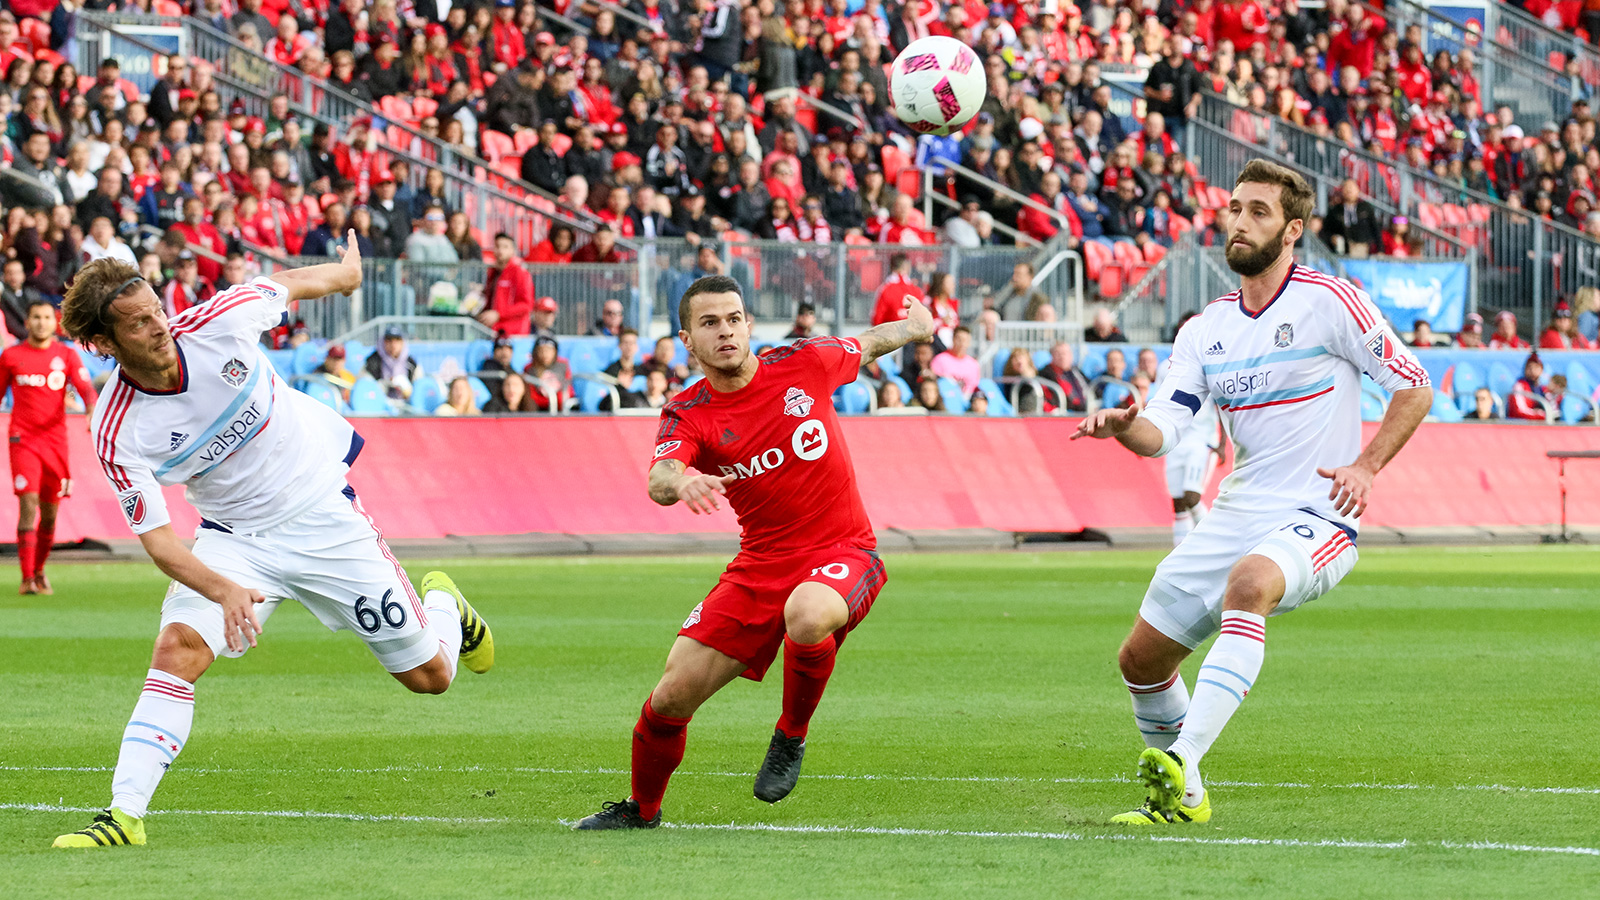 Toronto FC's Giovinco looking to keep the ball from two Chicago defenders.